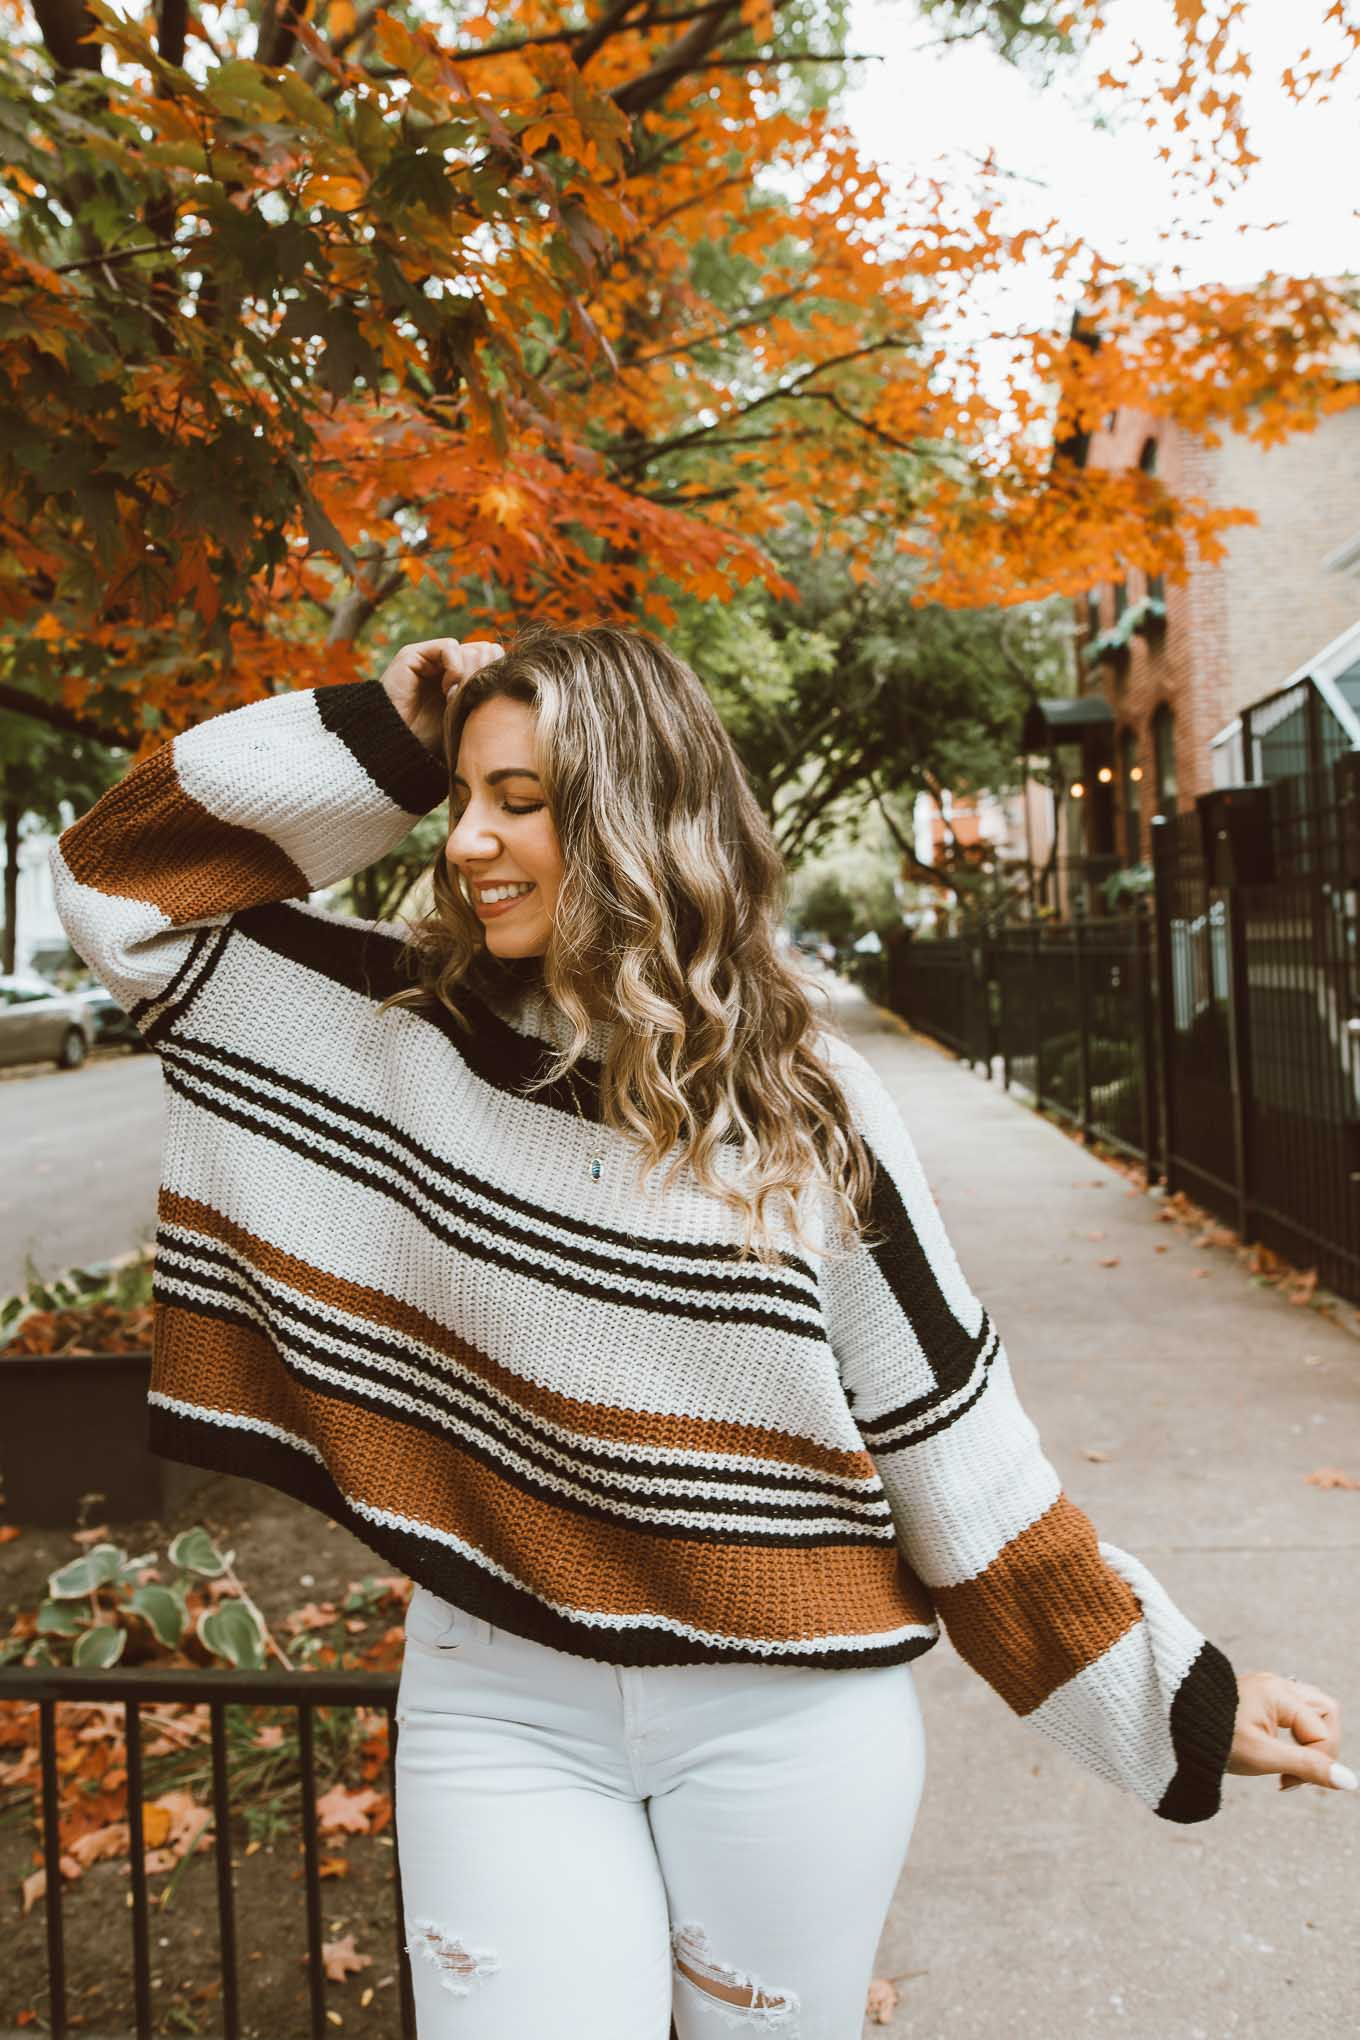 Fall Sweaters by popular Chicago fashion blog, Glass of Glam: image of a woman standing under a tree with orange leaves and wearing a Amazon ZESICA Women's Long Sleeve Crew Neck Striped Color Block Casual Loose Knitted Pullover Sweater, Old Navy Mid-Rise Distressed Rockstar Super Skinny White Ankle Jeans for Women, Gucci Gucci Jordaan GG canvas loafer, and Kendra Scott Elisa Gold Triple Strand Necklace In Abalone Shell.